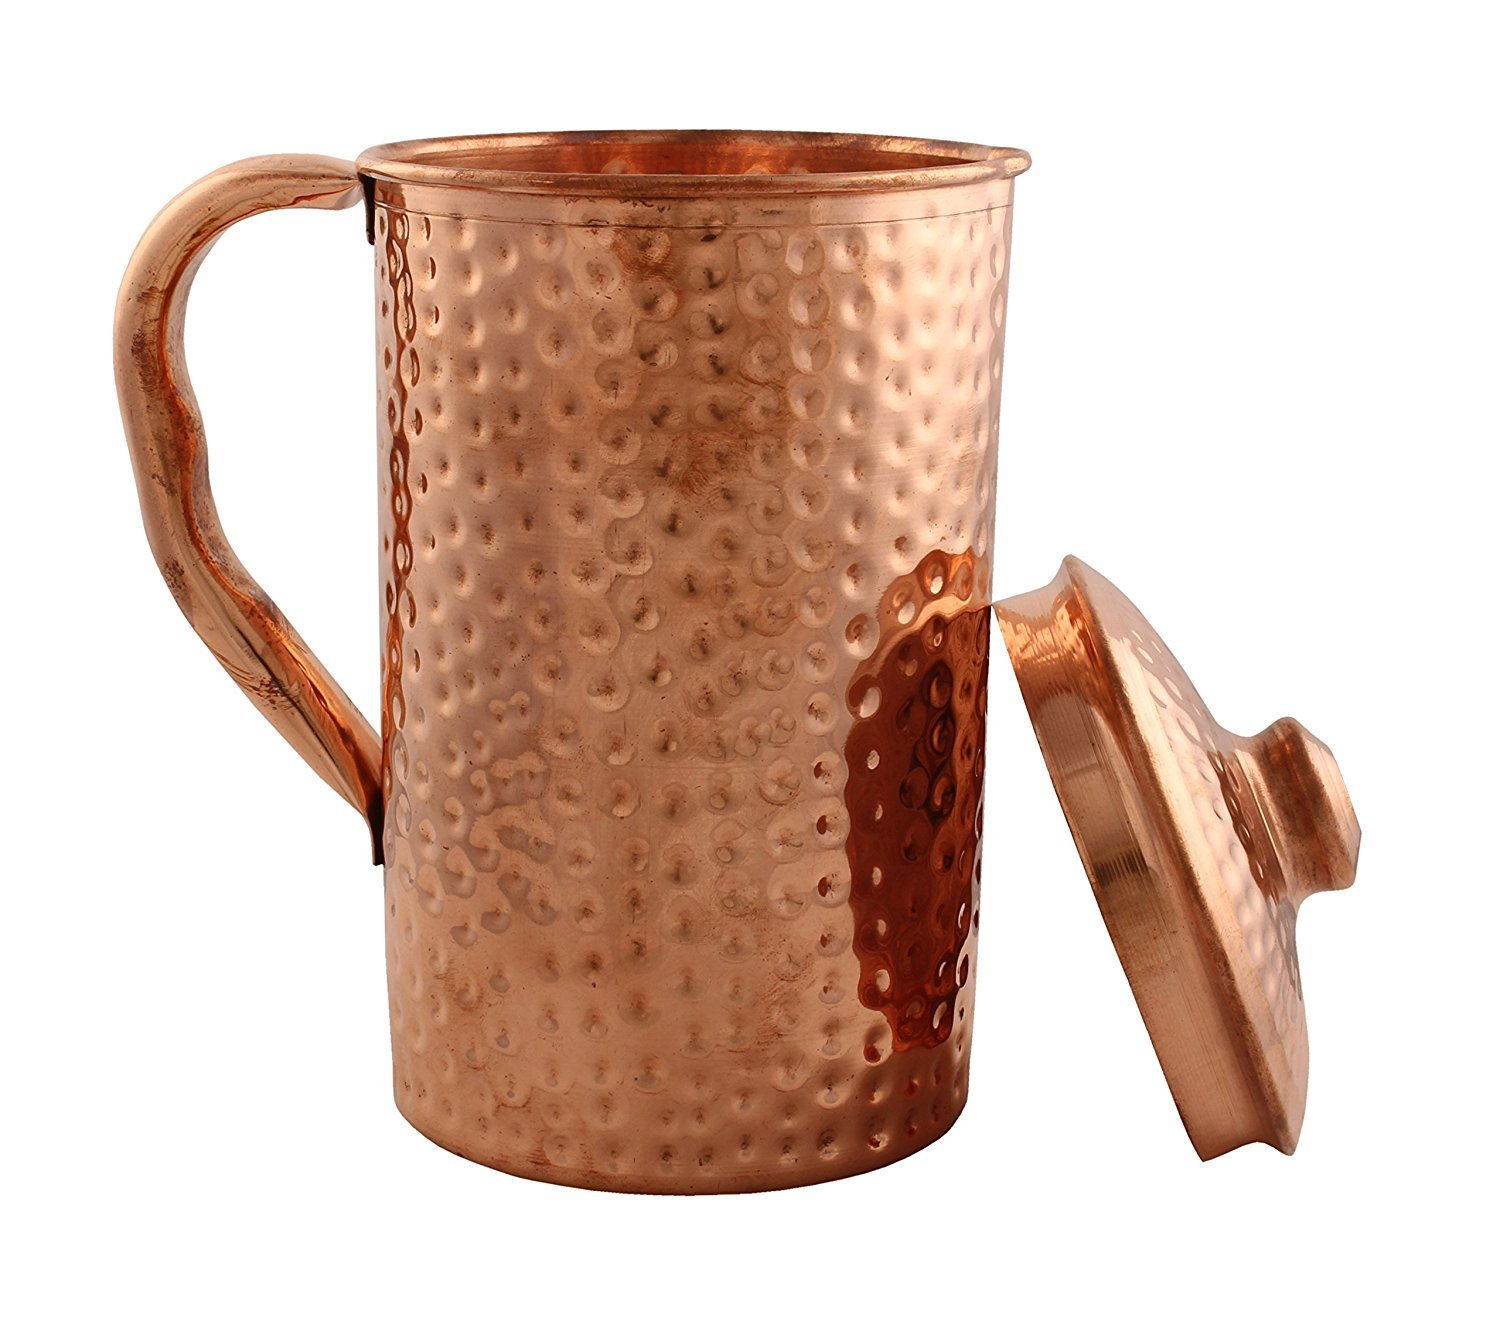 eCraftIndia Hammered Copper Jug Pitcher for regular use of Drinking water, Yoga & Health Benefits, 1700 ML